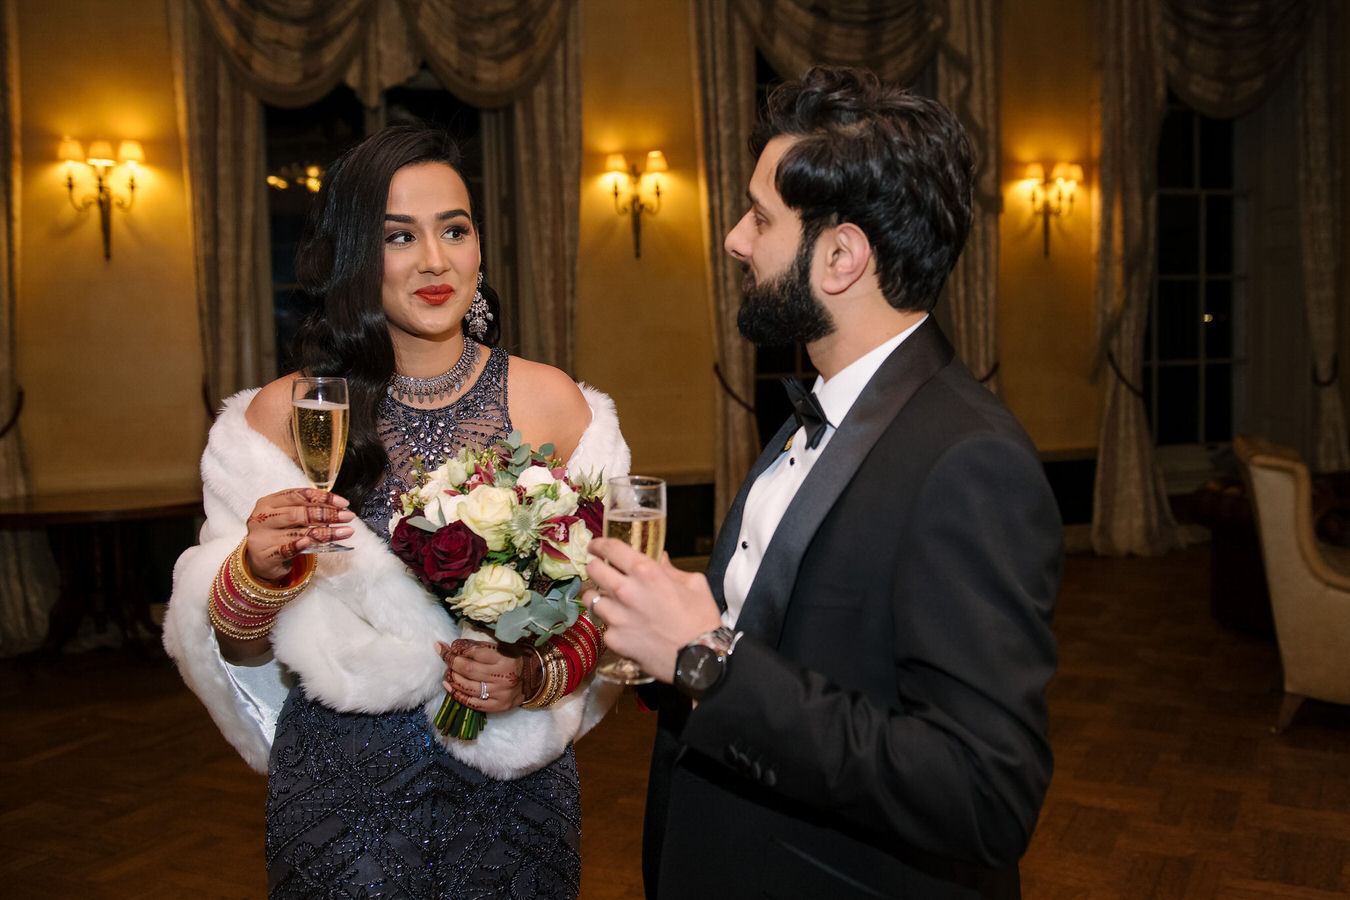 Asian bride dressed in a grey sparkling evening dress and the groom with champagne glasses in their hands are looking at each other